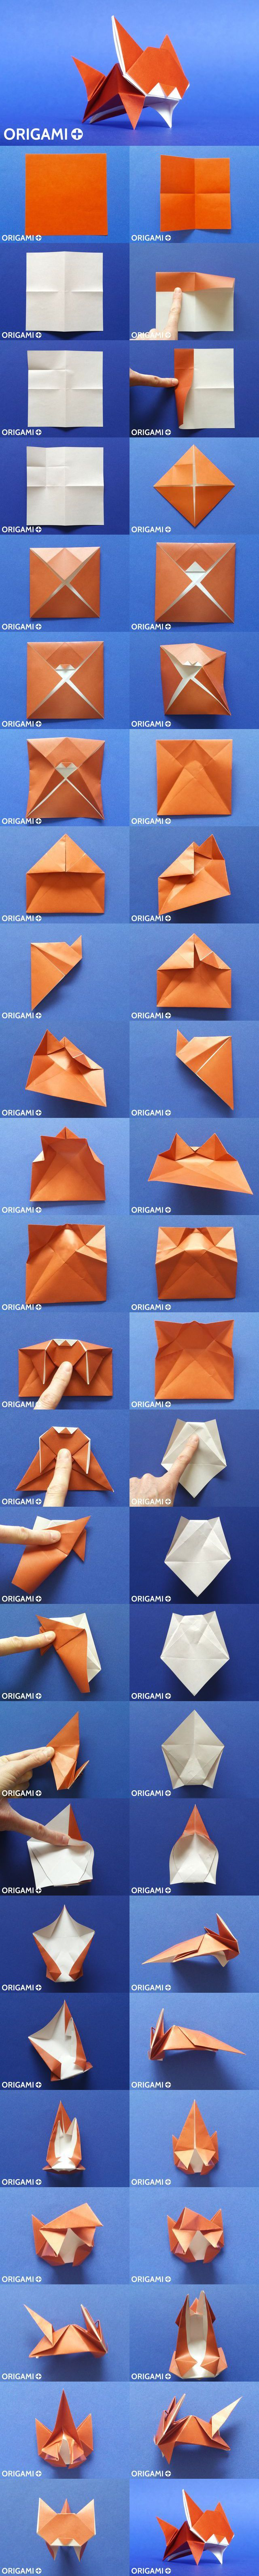 Very Cute Origami Cat tutorial, Jumping Origami Kitten diagram and video instructions